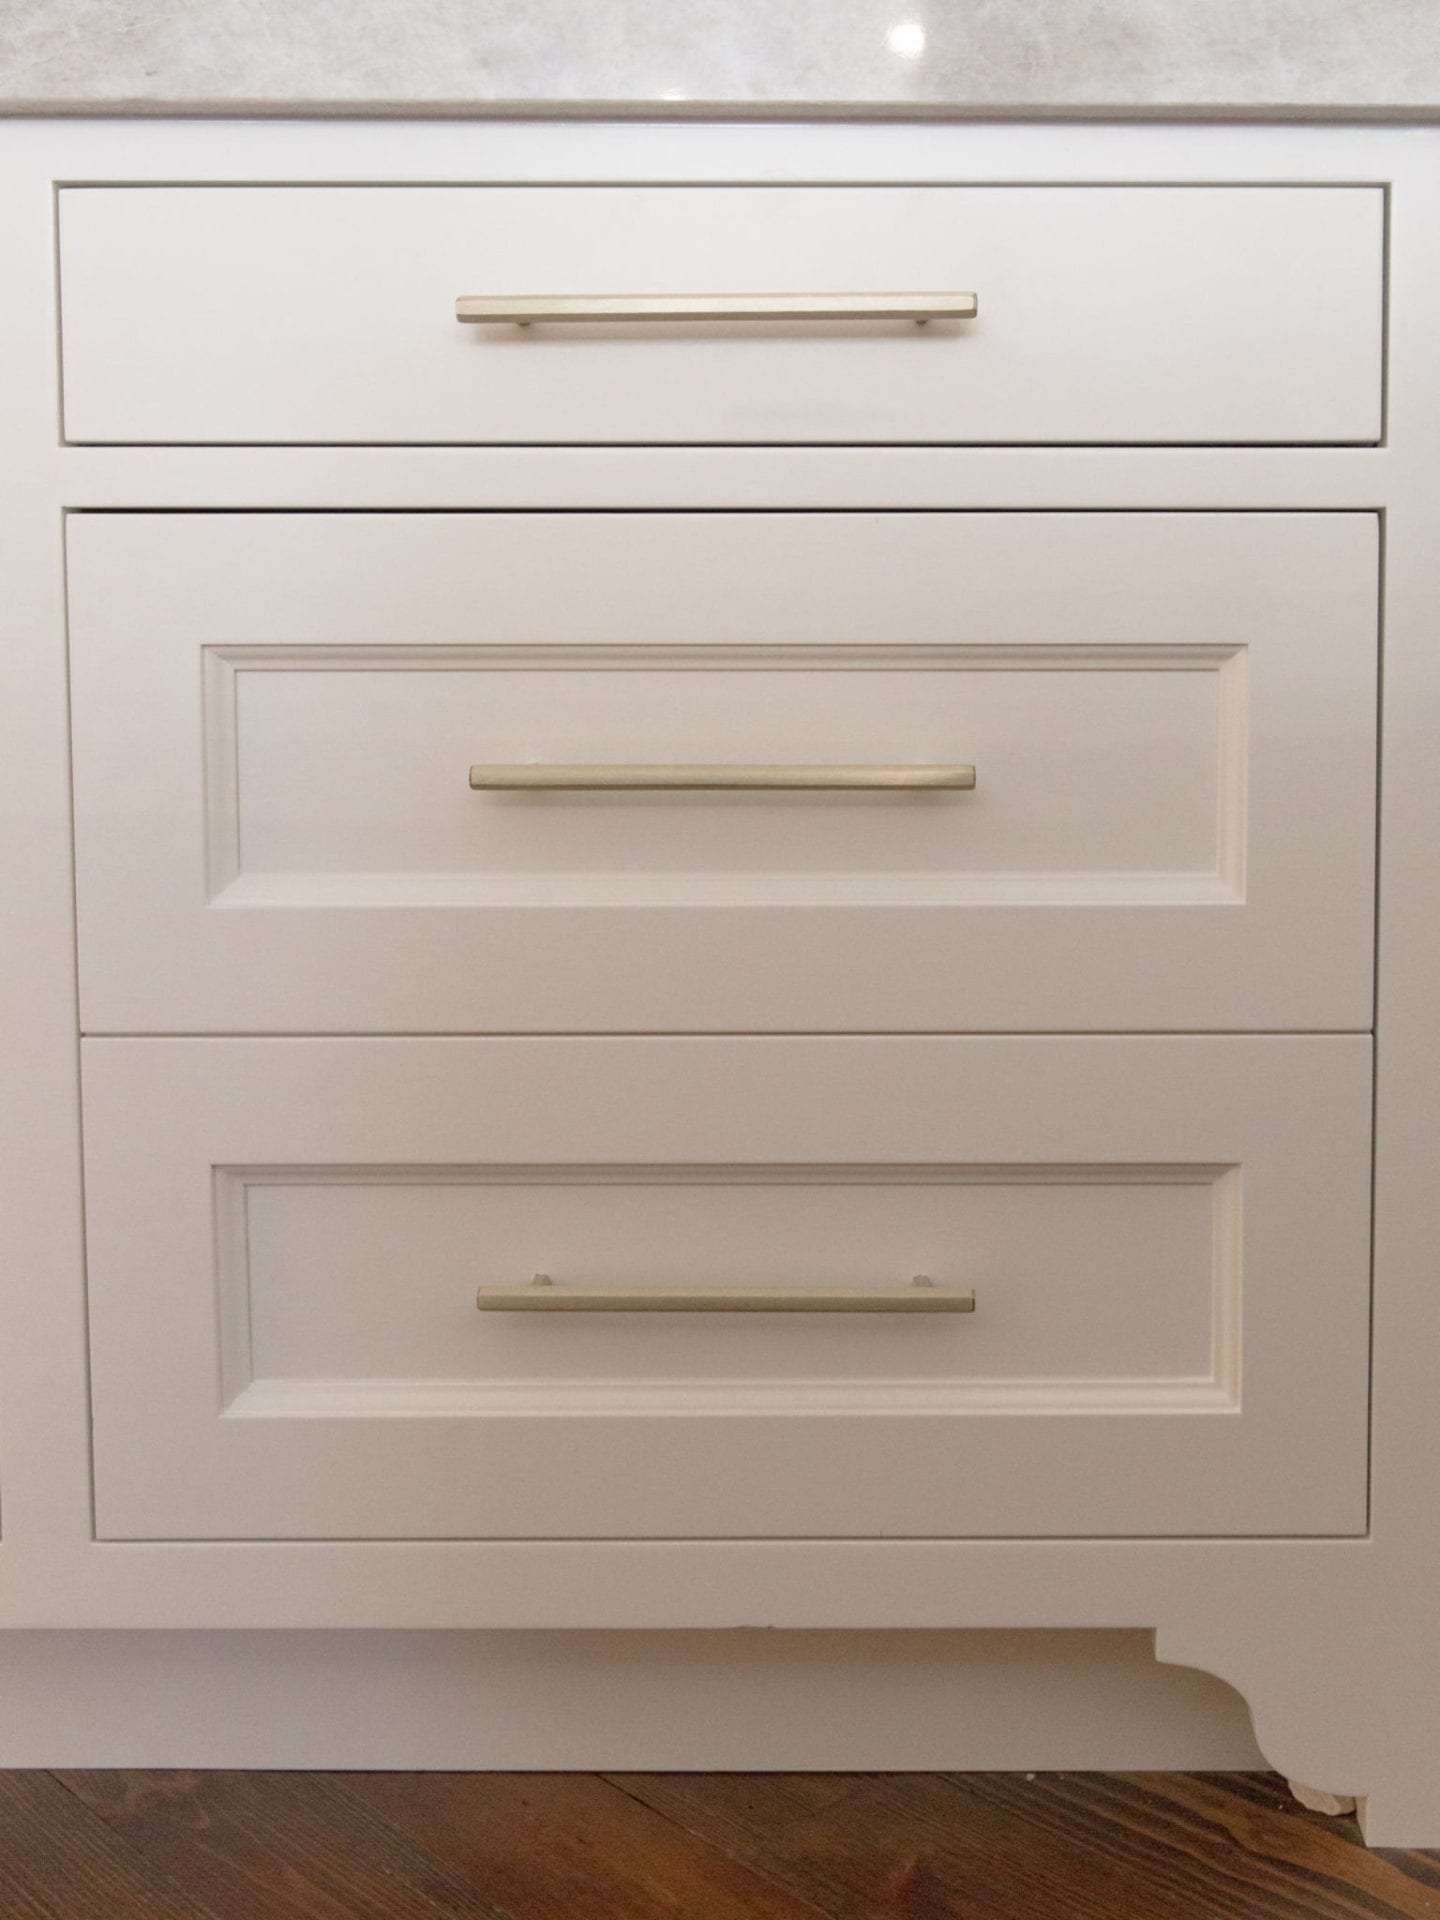 Luxury Hardware made by VESTA hardware. White Dove paint color for cabinetry with quartzite countertop in Taj Majal.